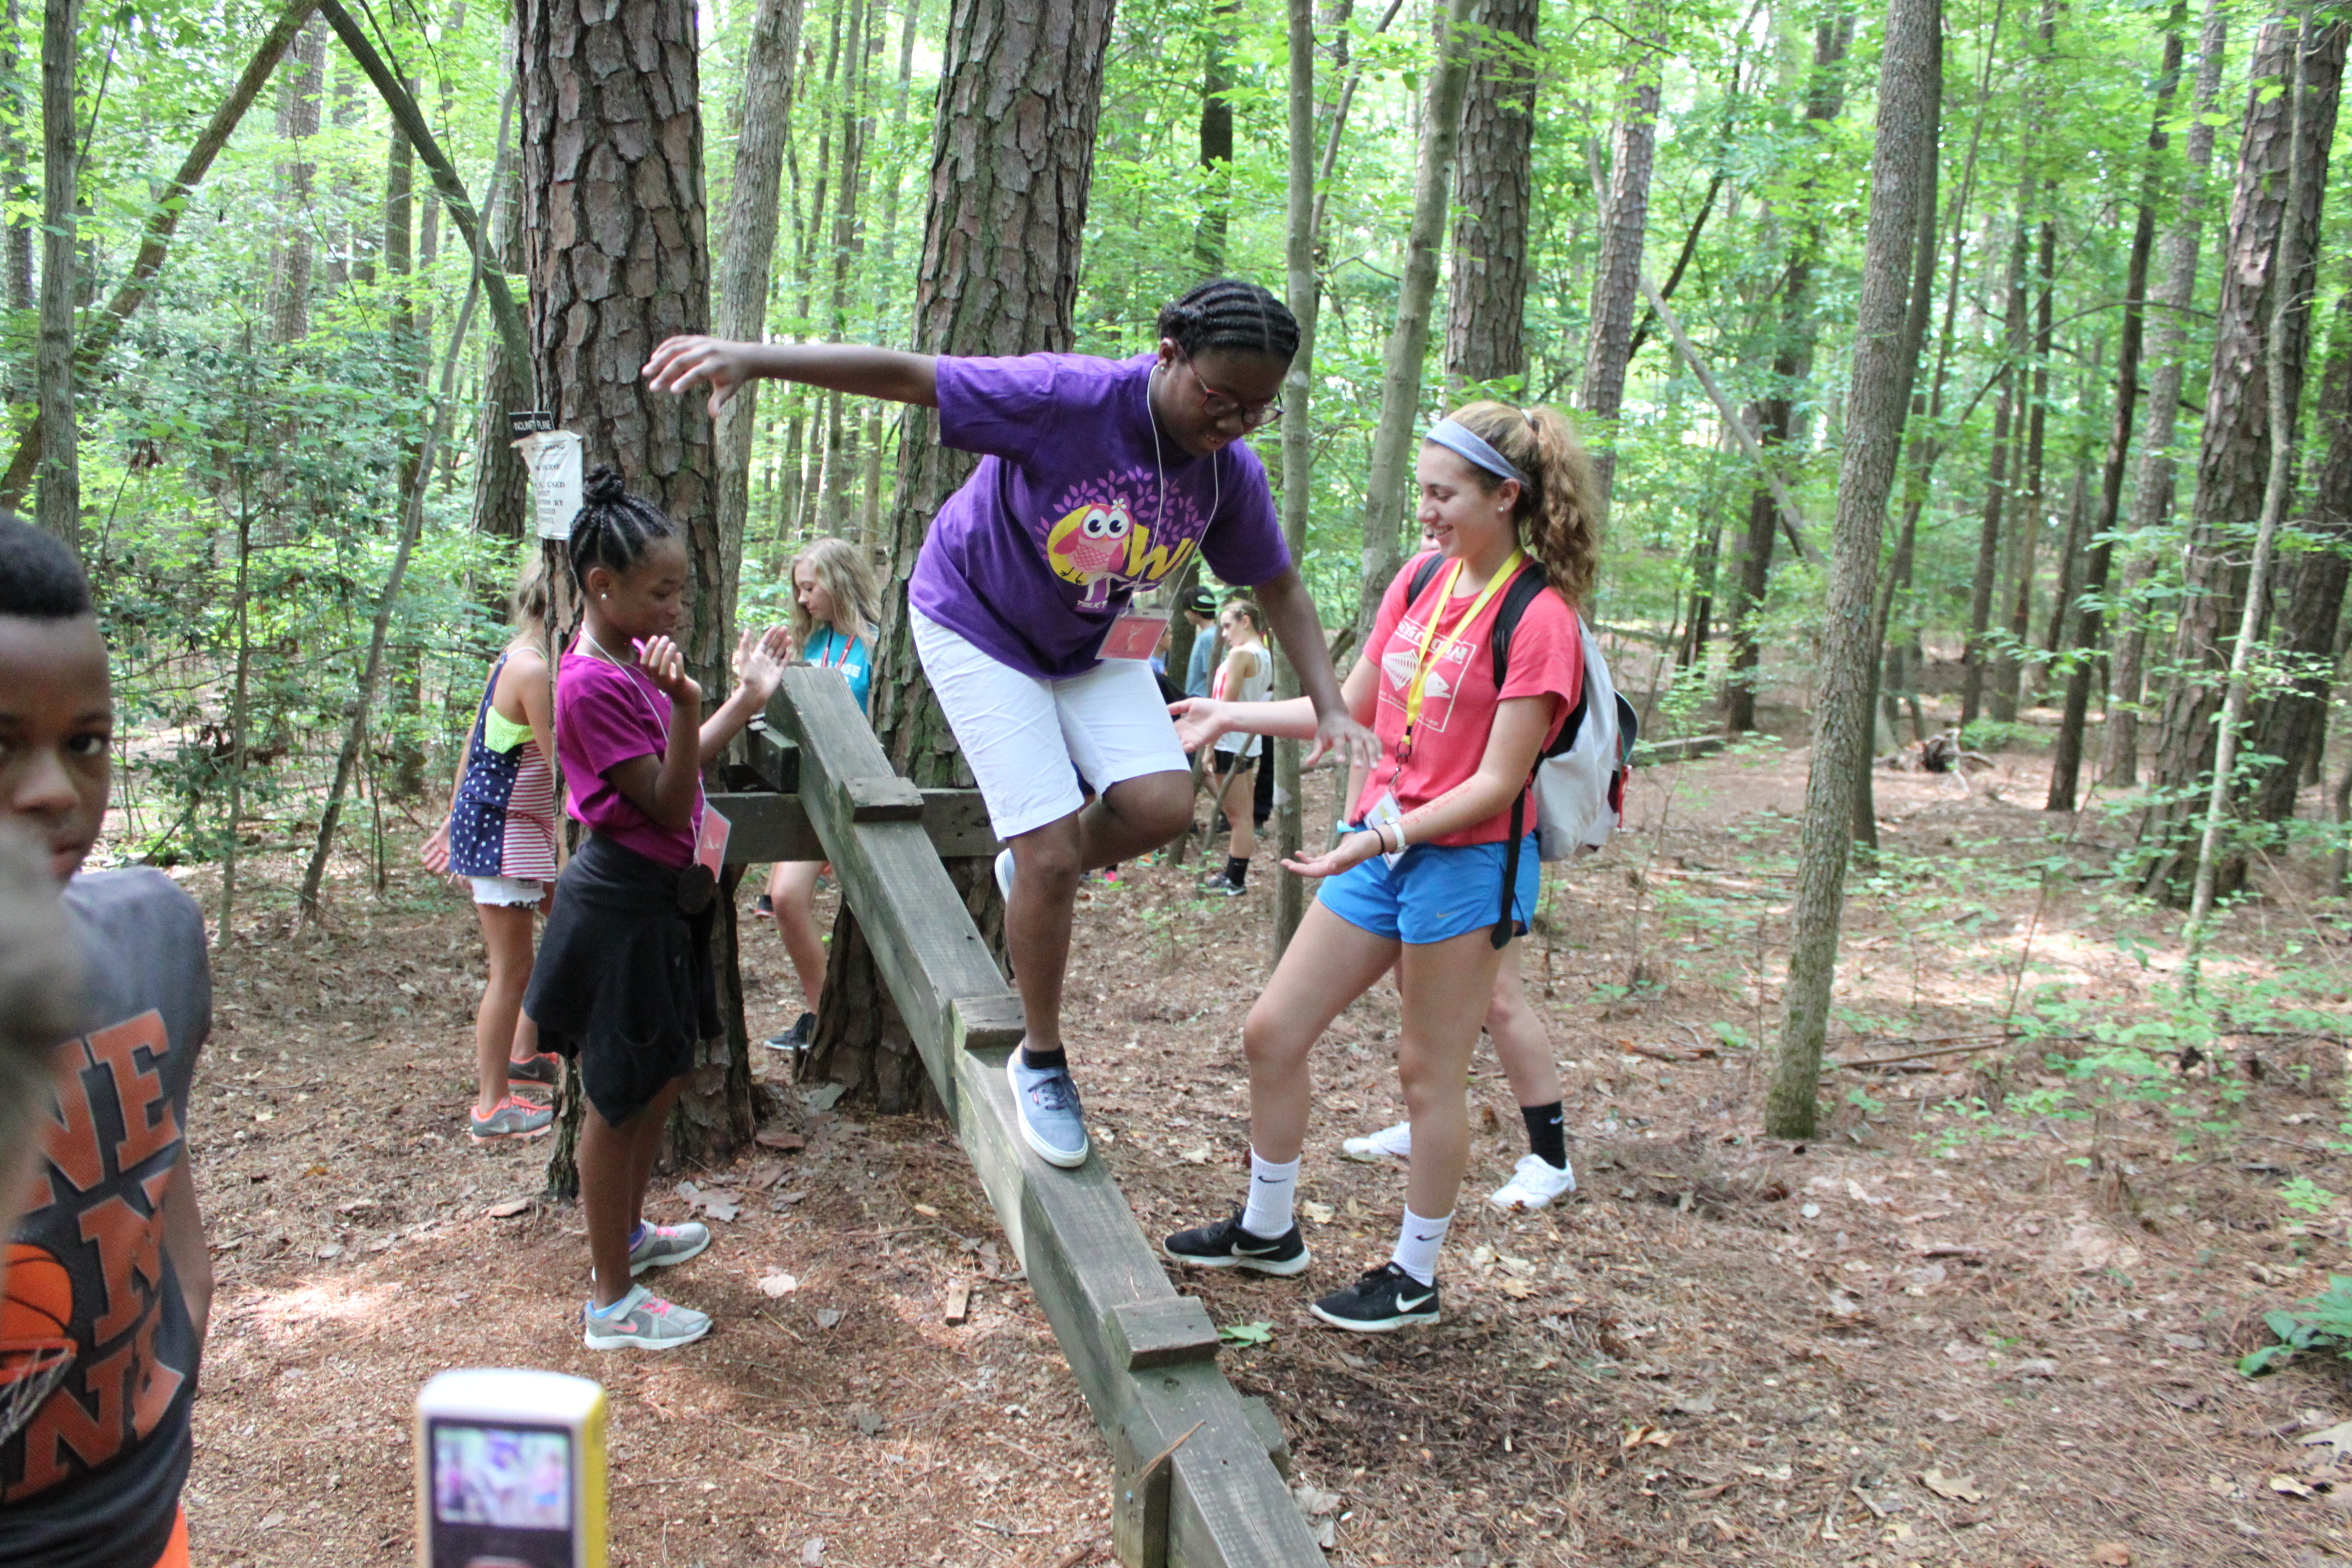 Kids participating in the ropes course